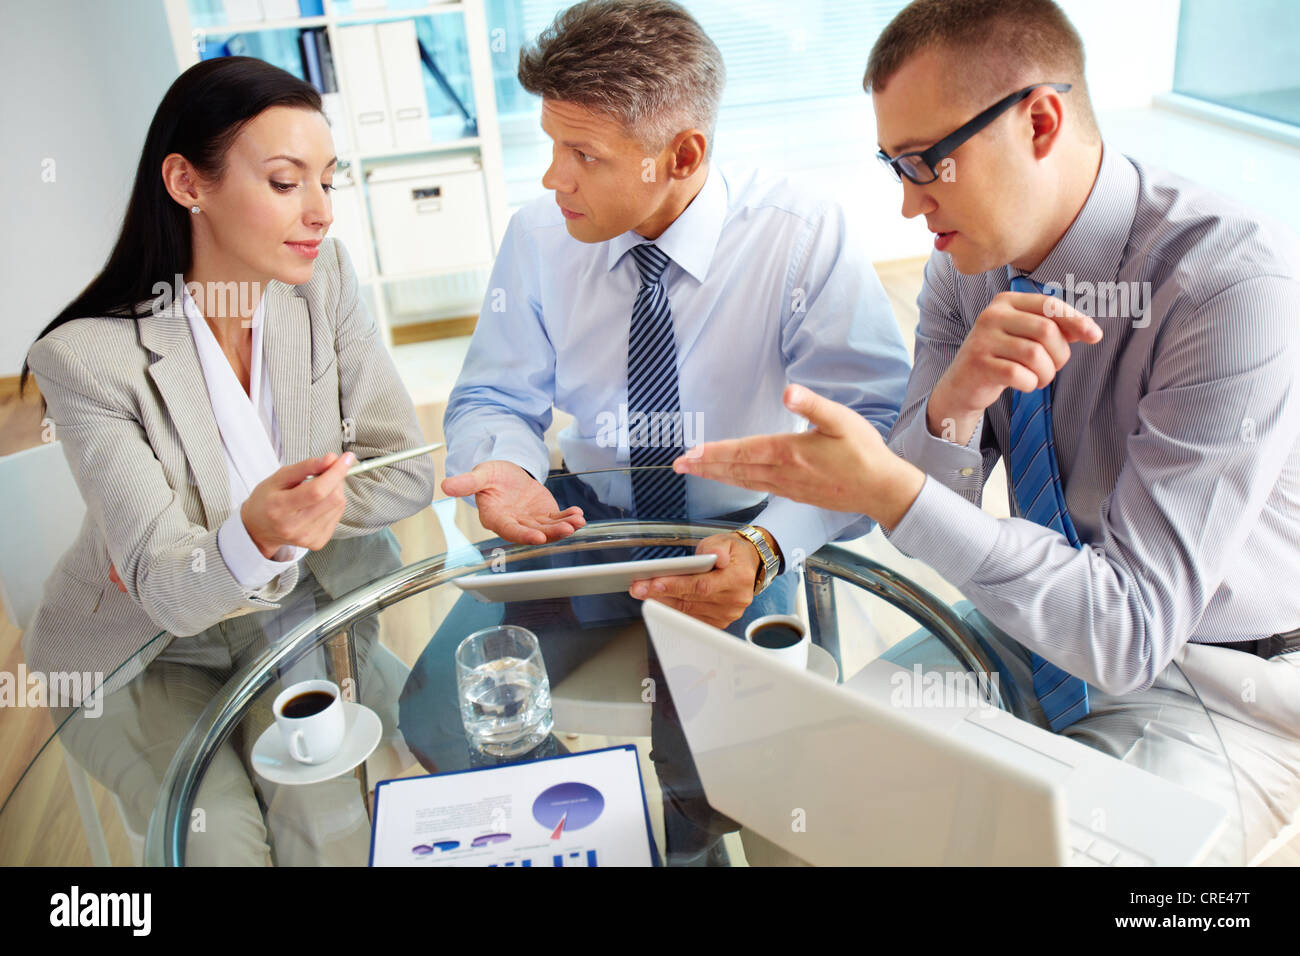 Energetic business people discussing the results of the latest strategic movements - Stock Image